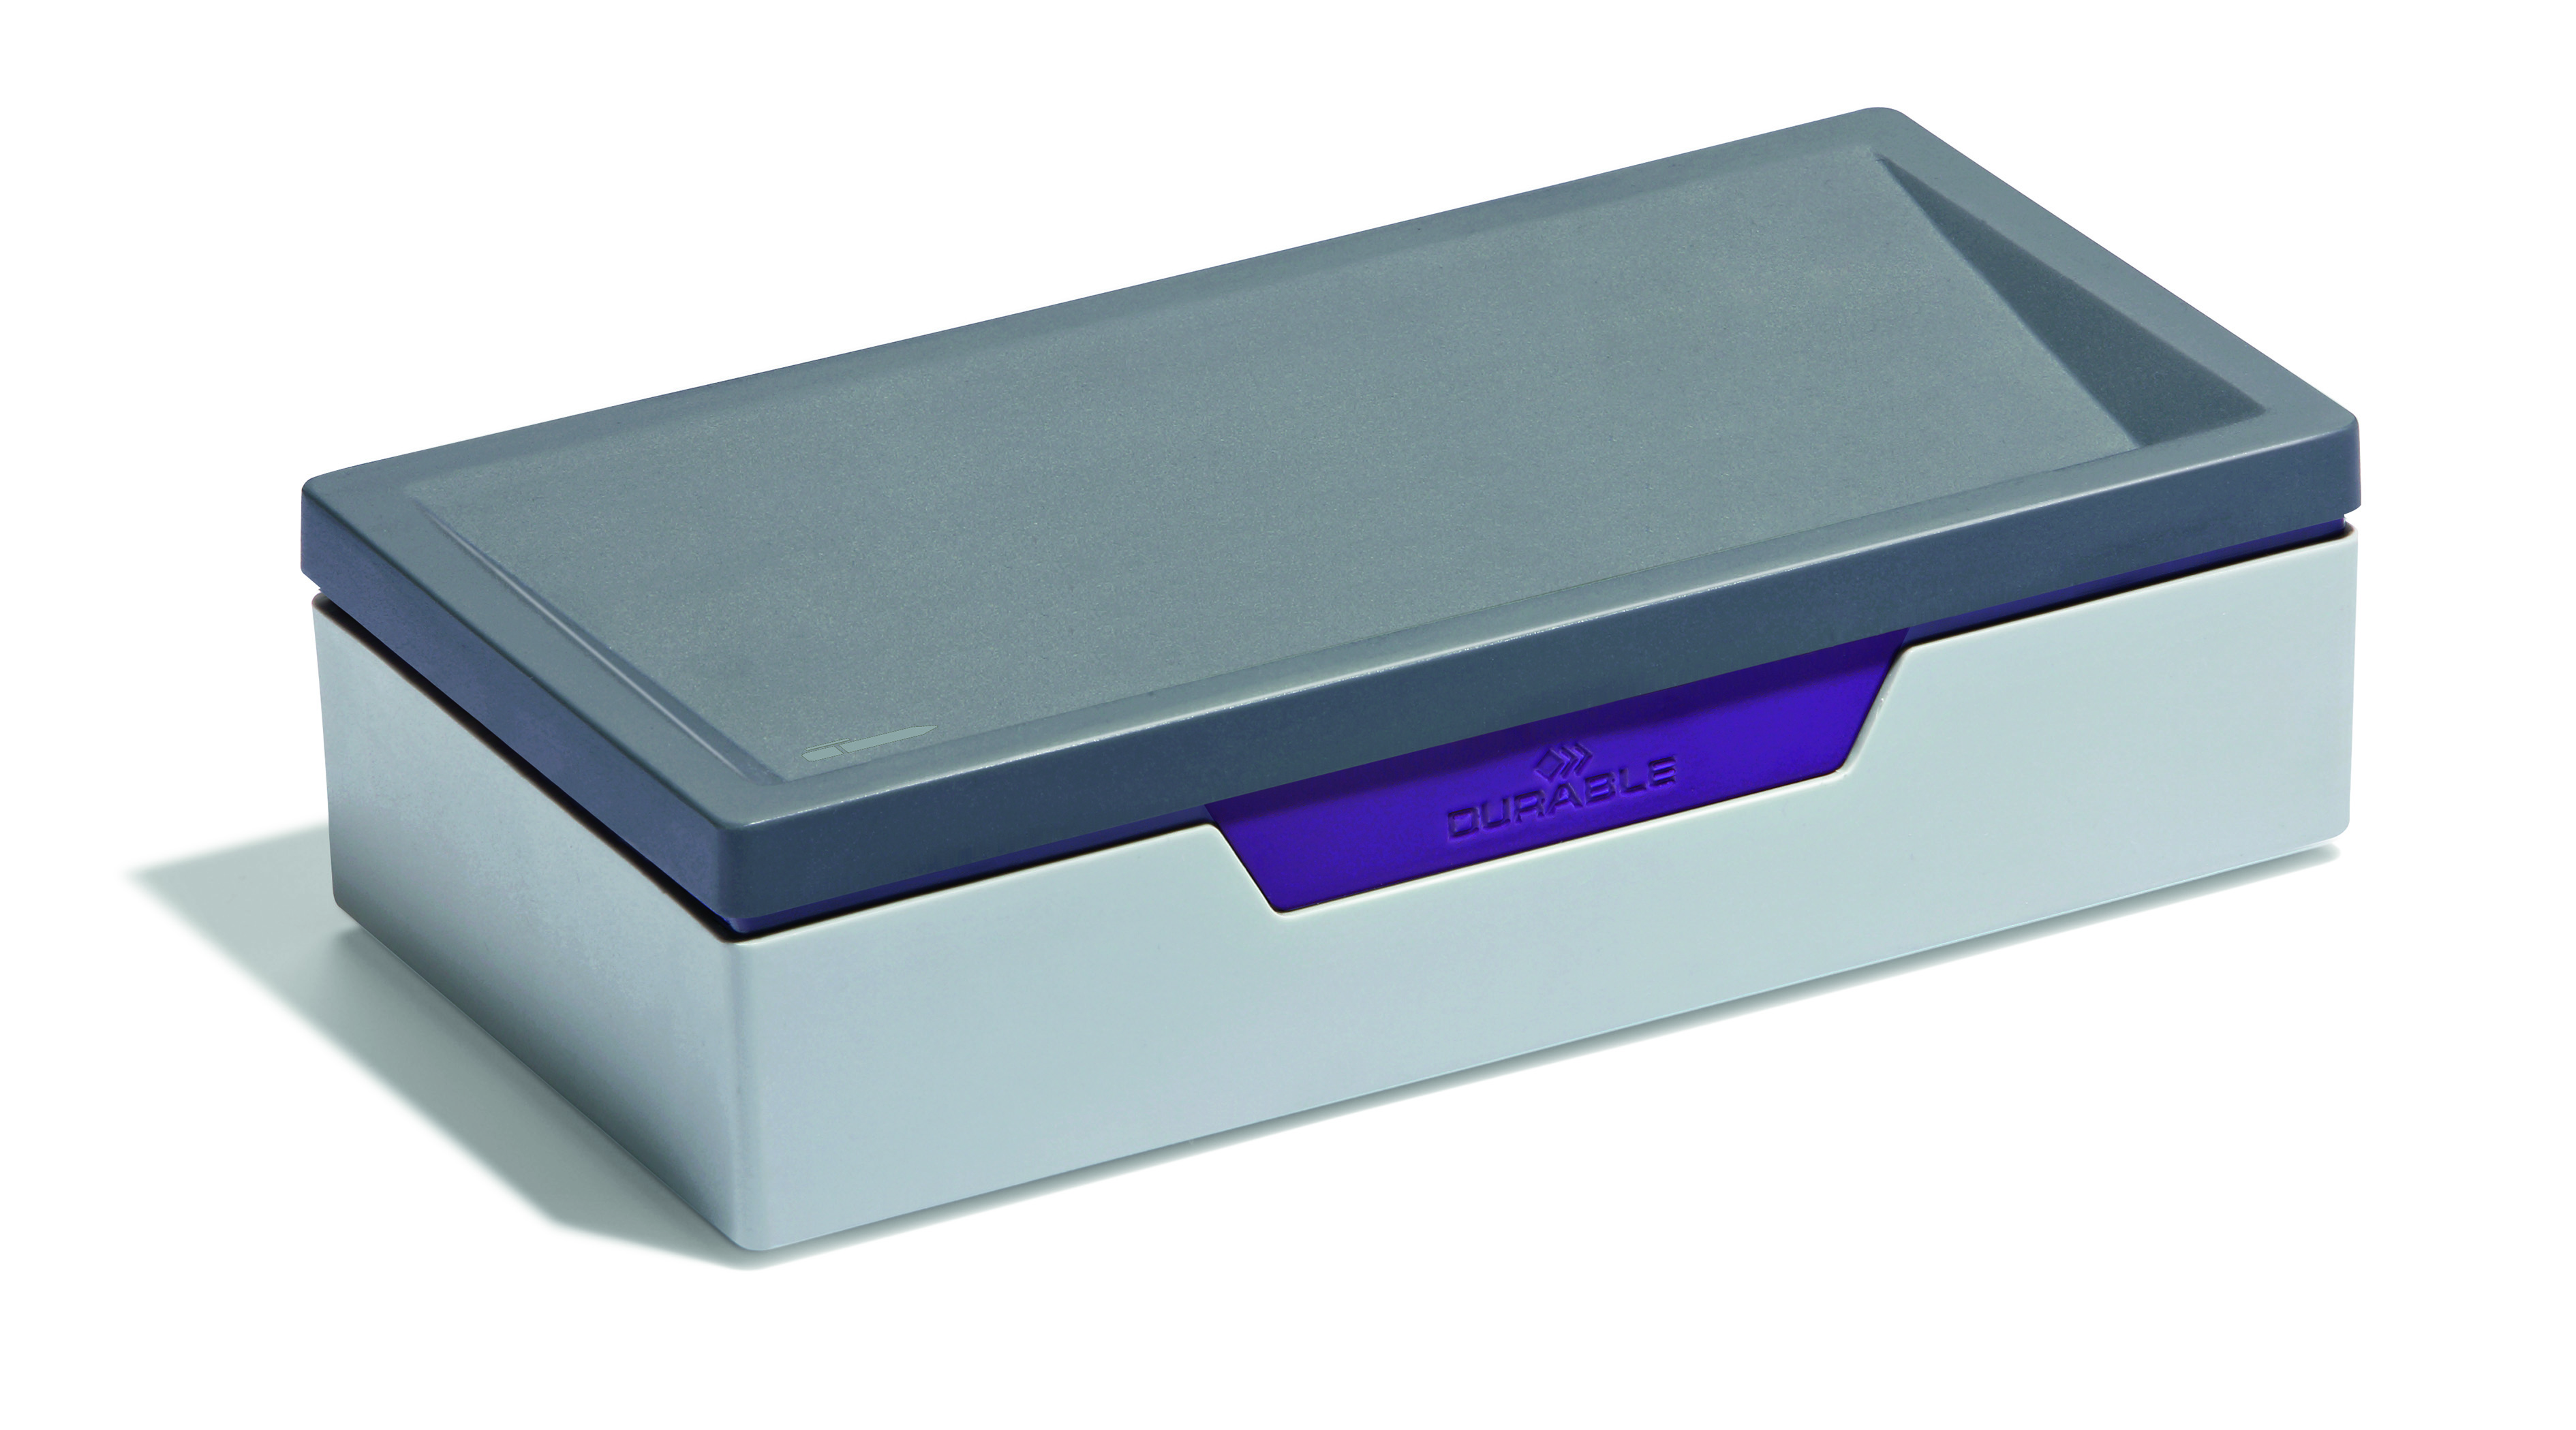 Durable Varicolor Desktop Storage Box for Small Items Grey/Lilac Ref 761212